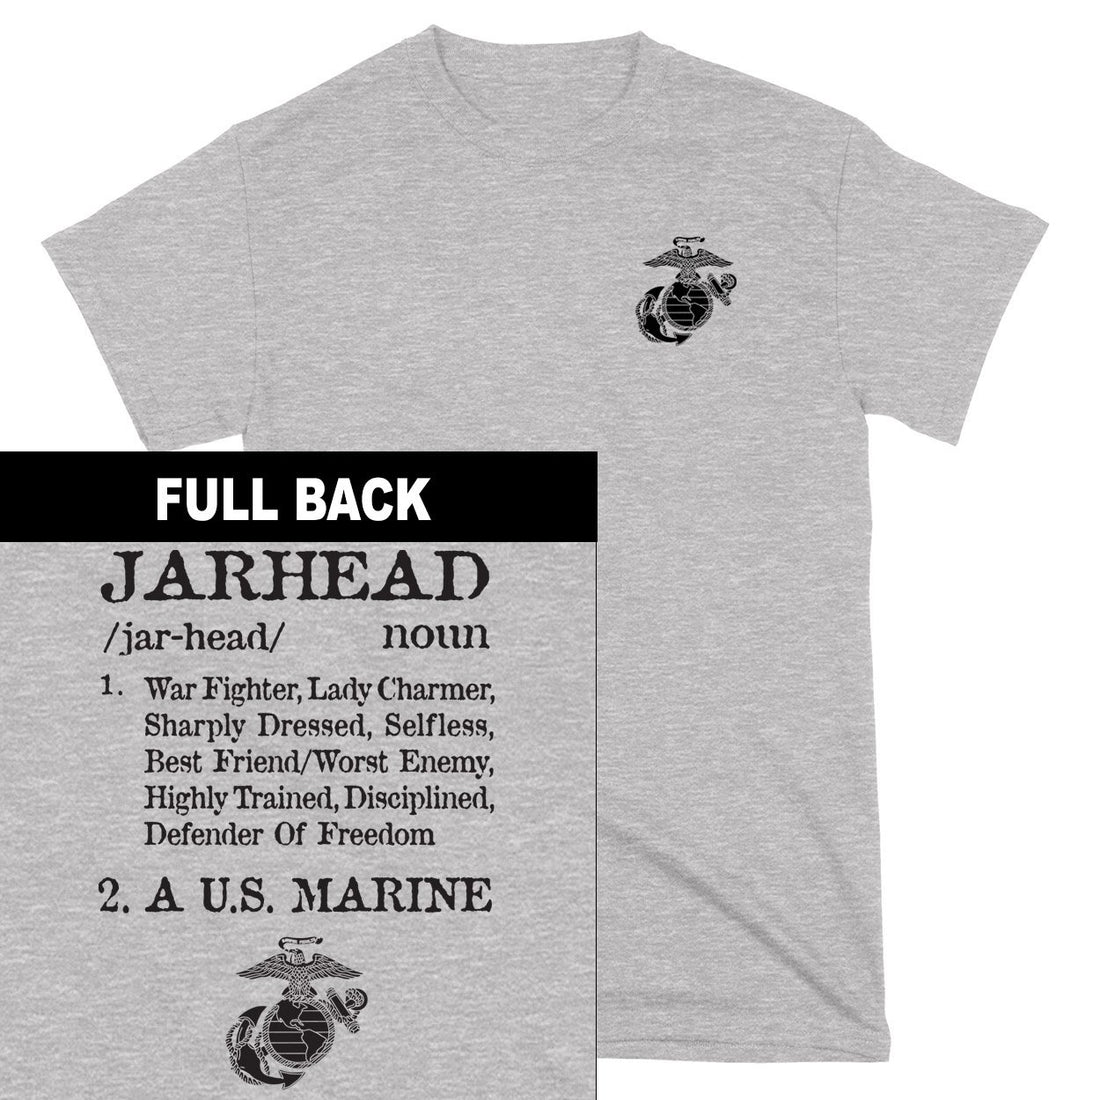 Jarhead 2-Sided T-Shirt - Marine Corps Direct